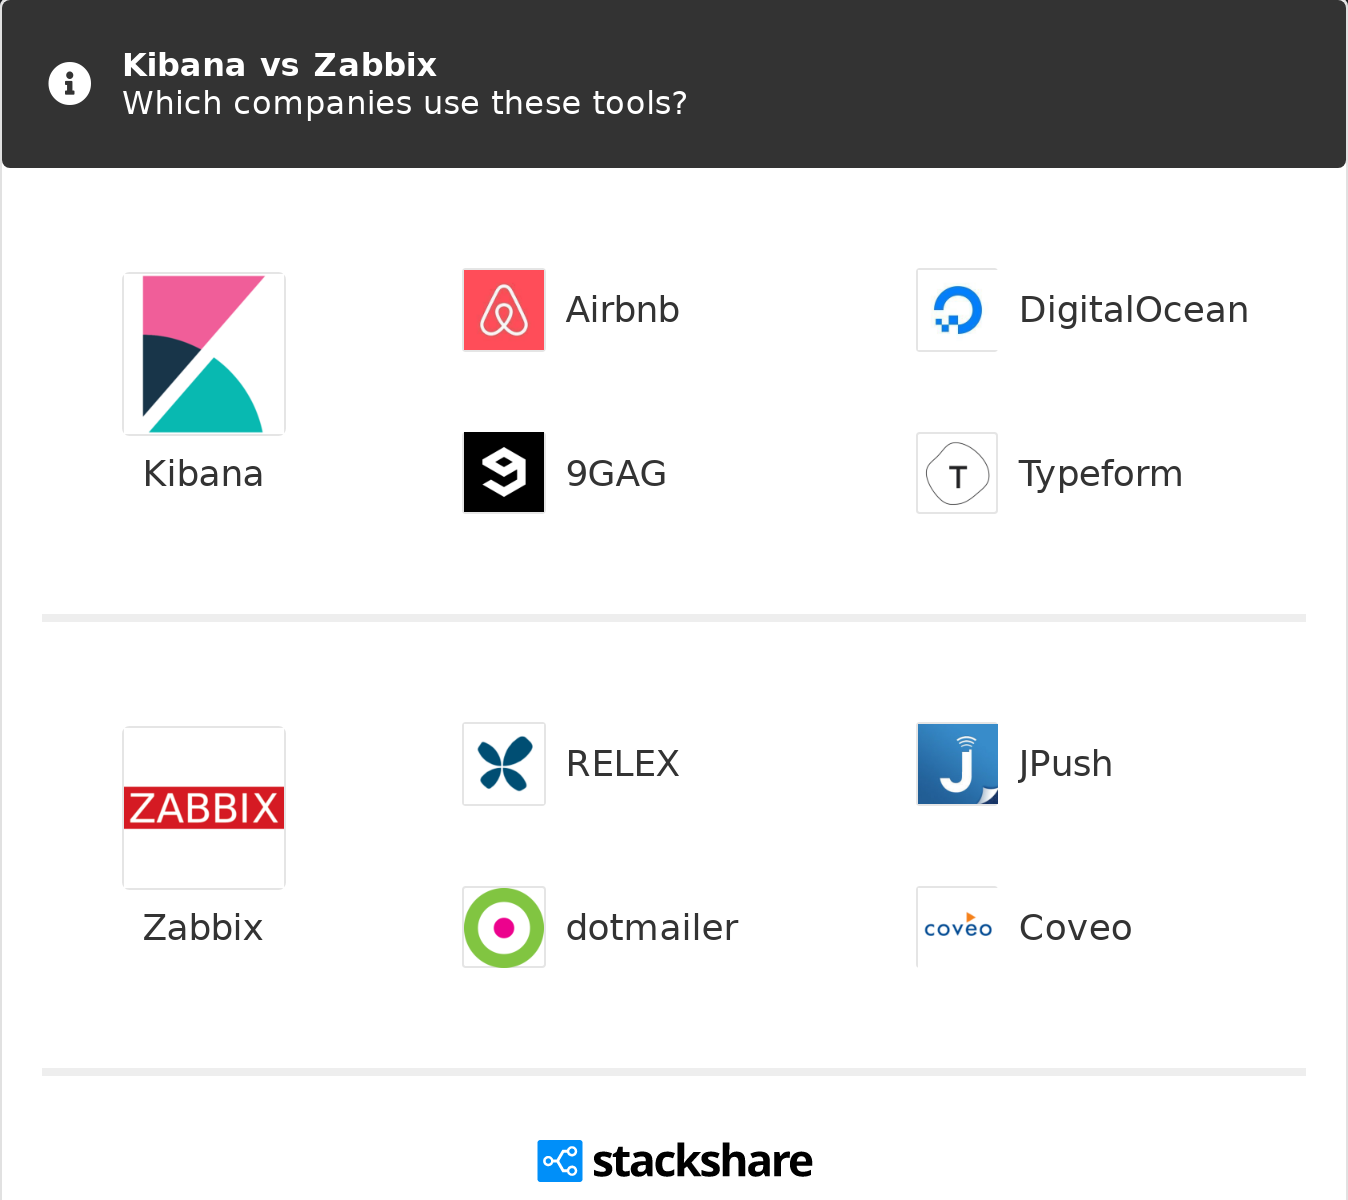 Kibana vs Zabbix | What are the differences?